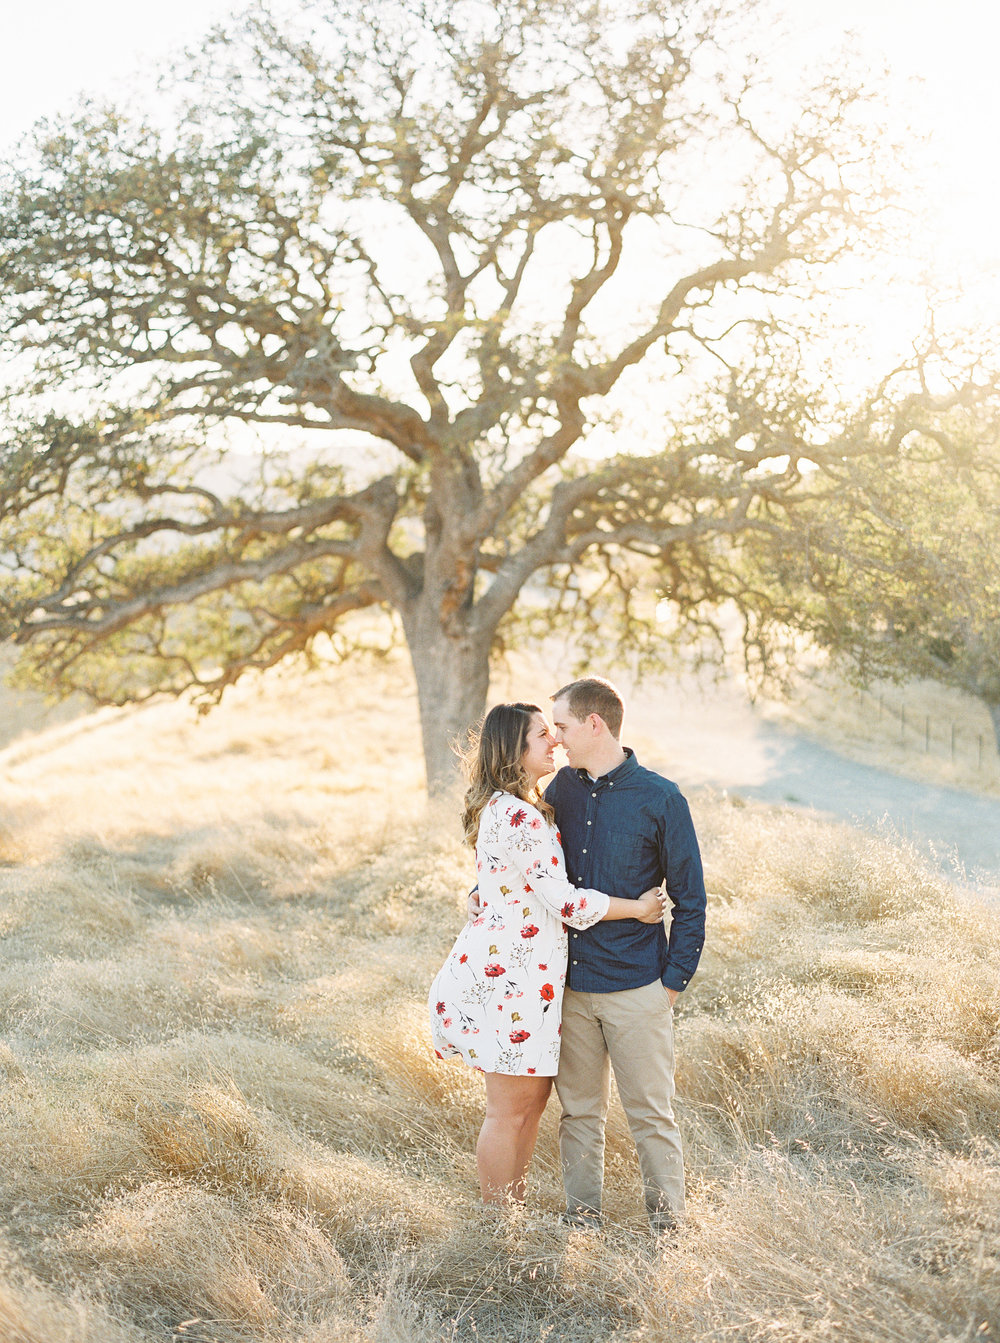 Del-Valle-Livermore-engagement-75.jpg